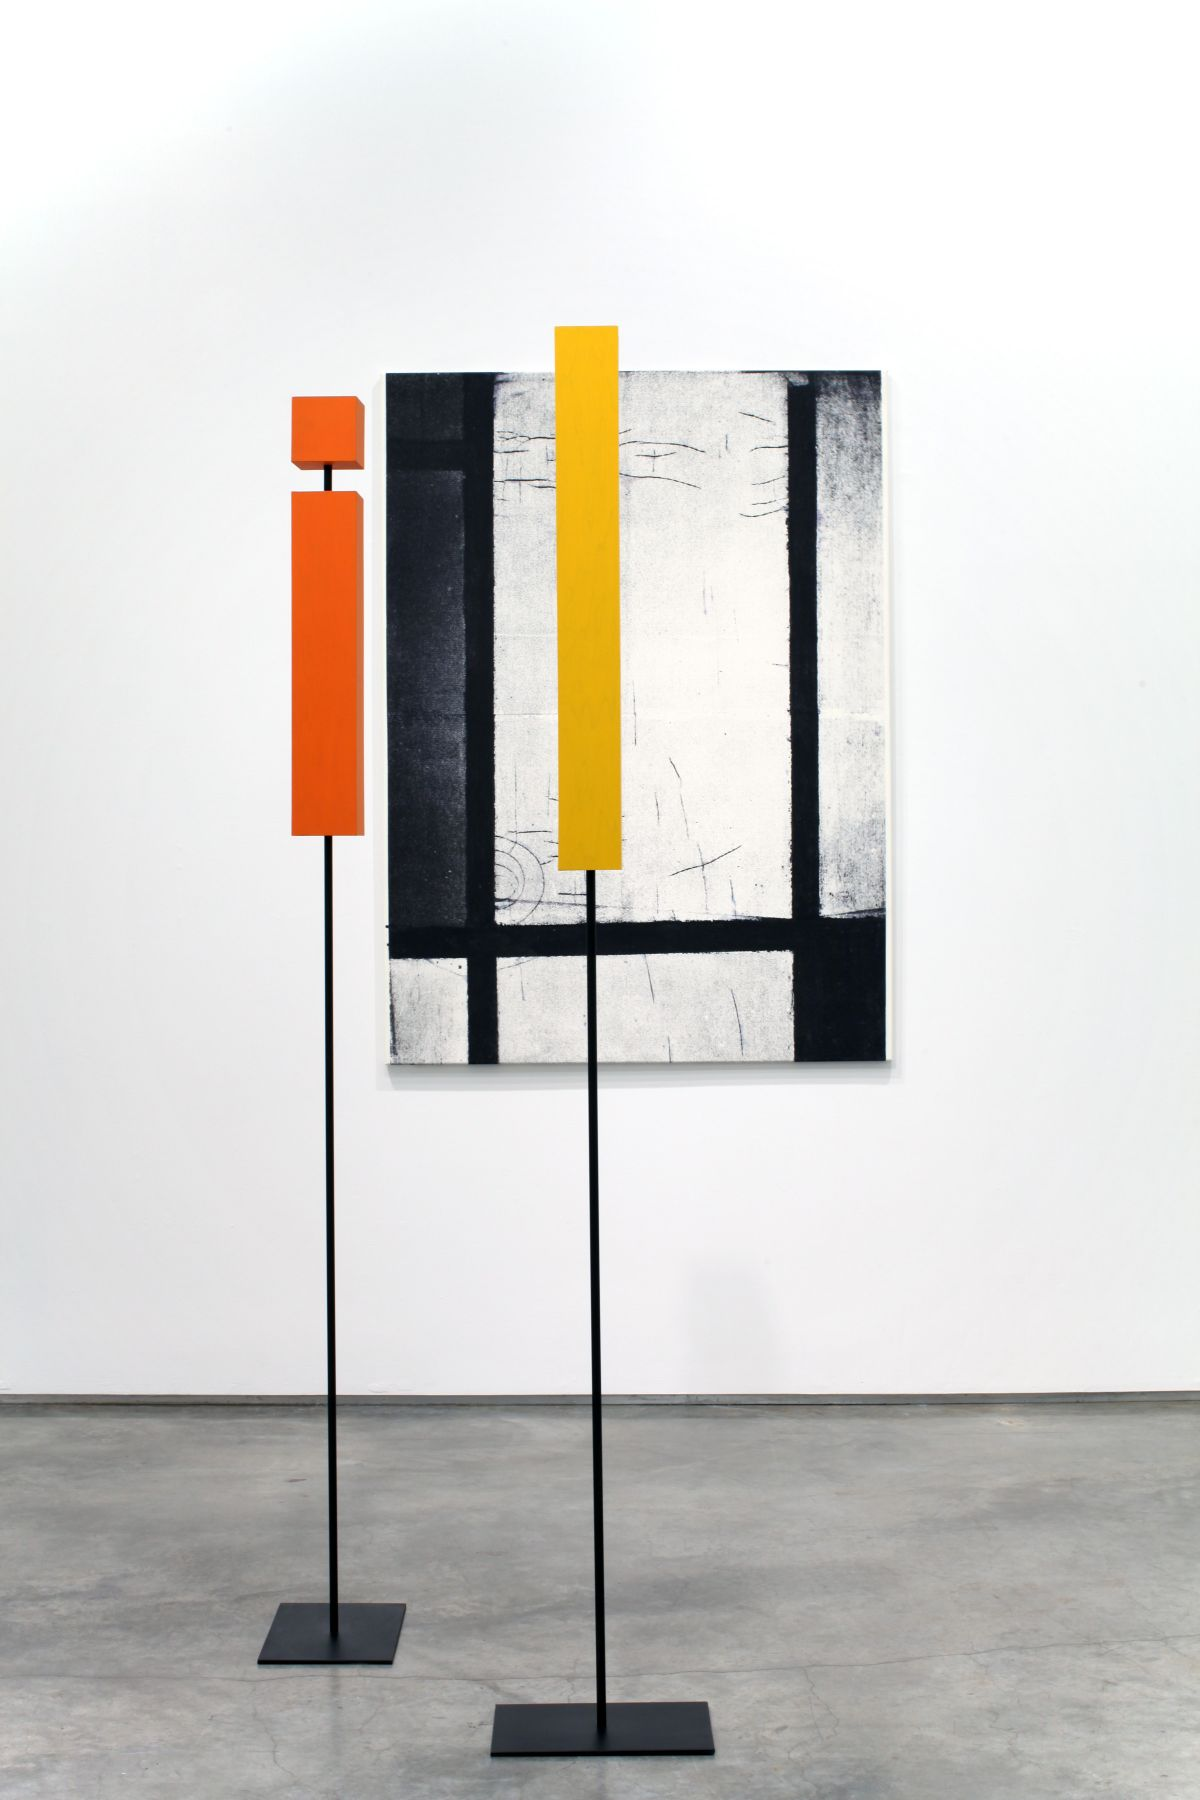 installation by melissa gordon with black and white grid painting and yellow and red rectangular sculptures